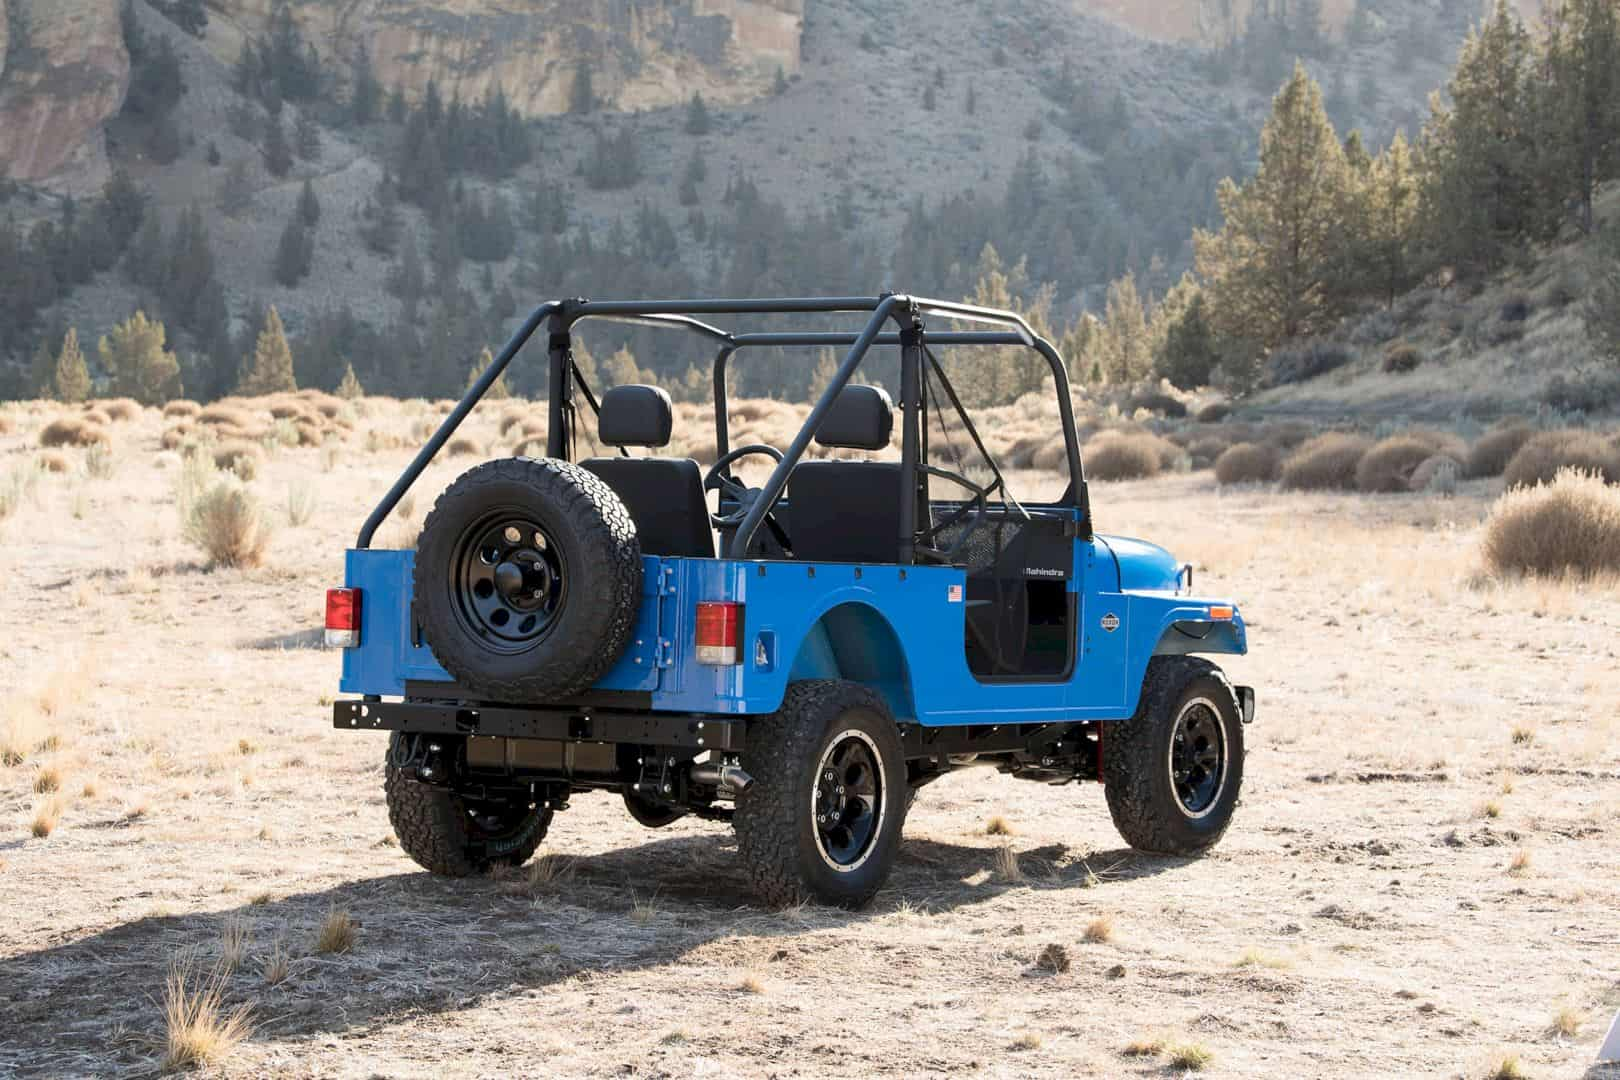 ROXOR: The Off-Road Vehicle with Modern Innovation